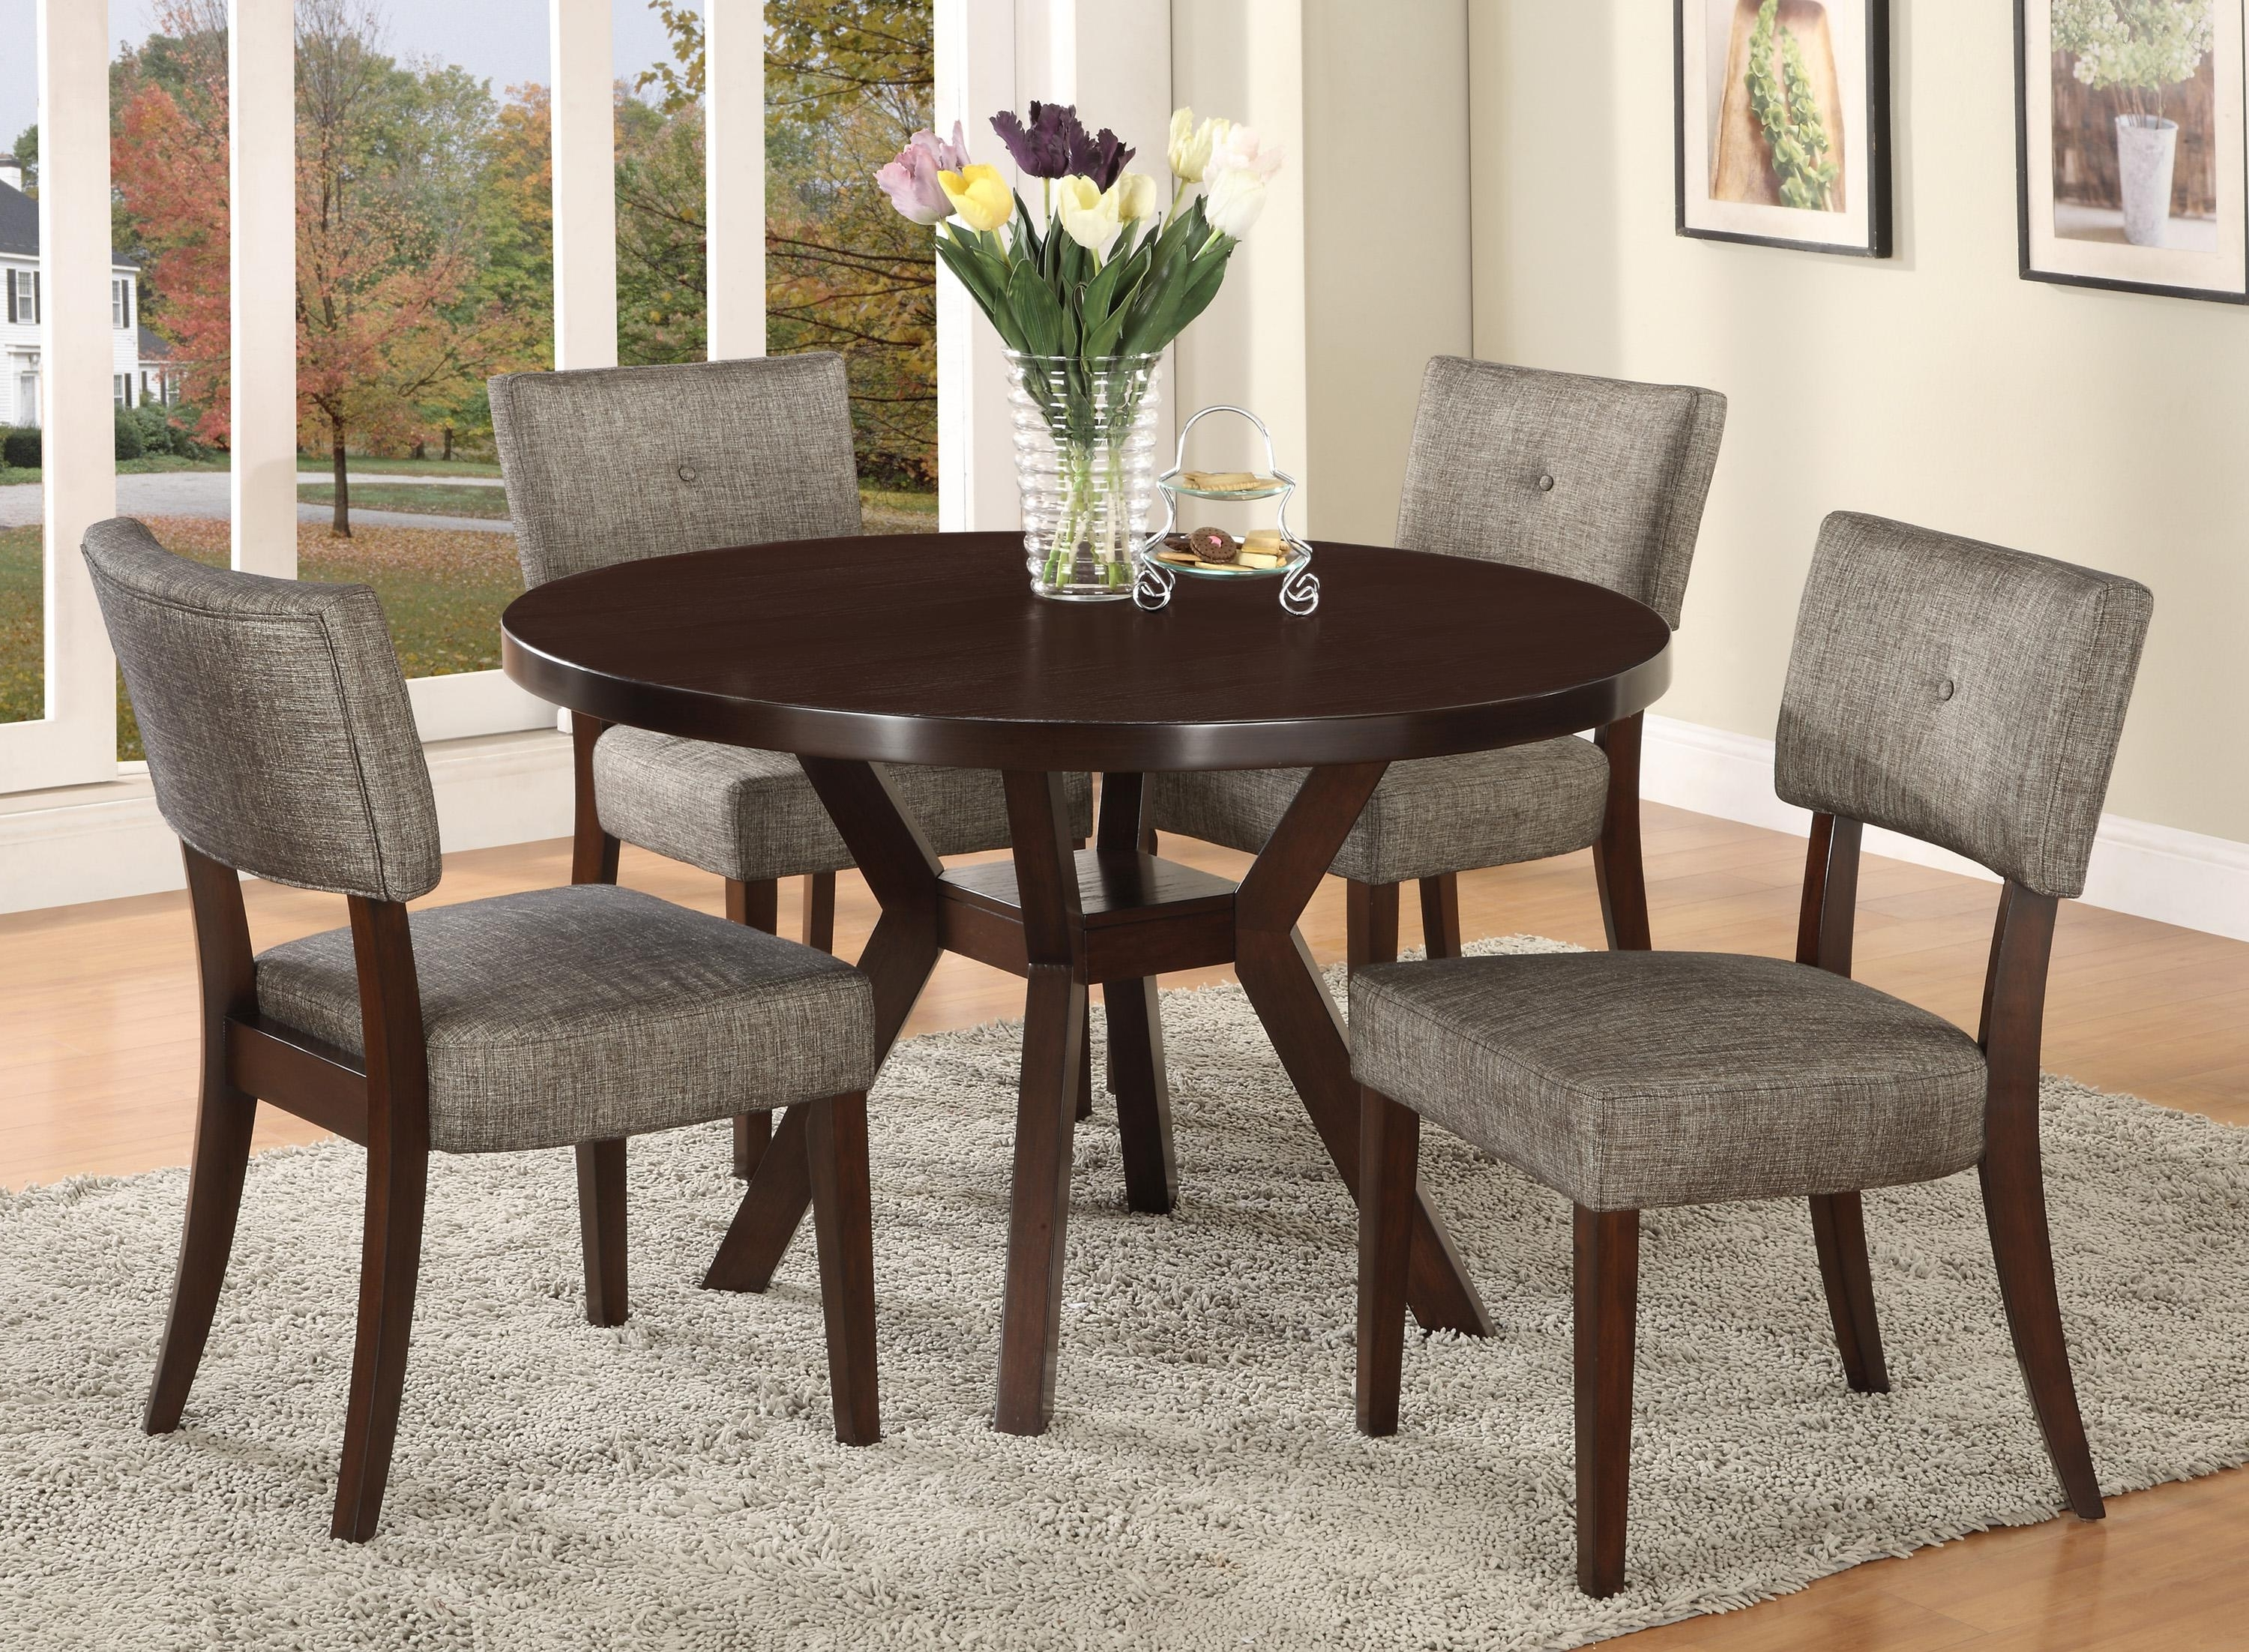 Newest Macie Round Dining Tables Throughout Crown Mark Kayla 5 Piece Dining Table And Chair Set (Gallery 6 of 25)